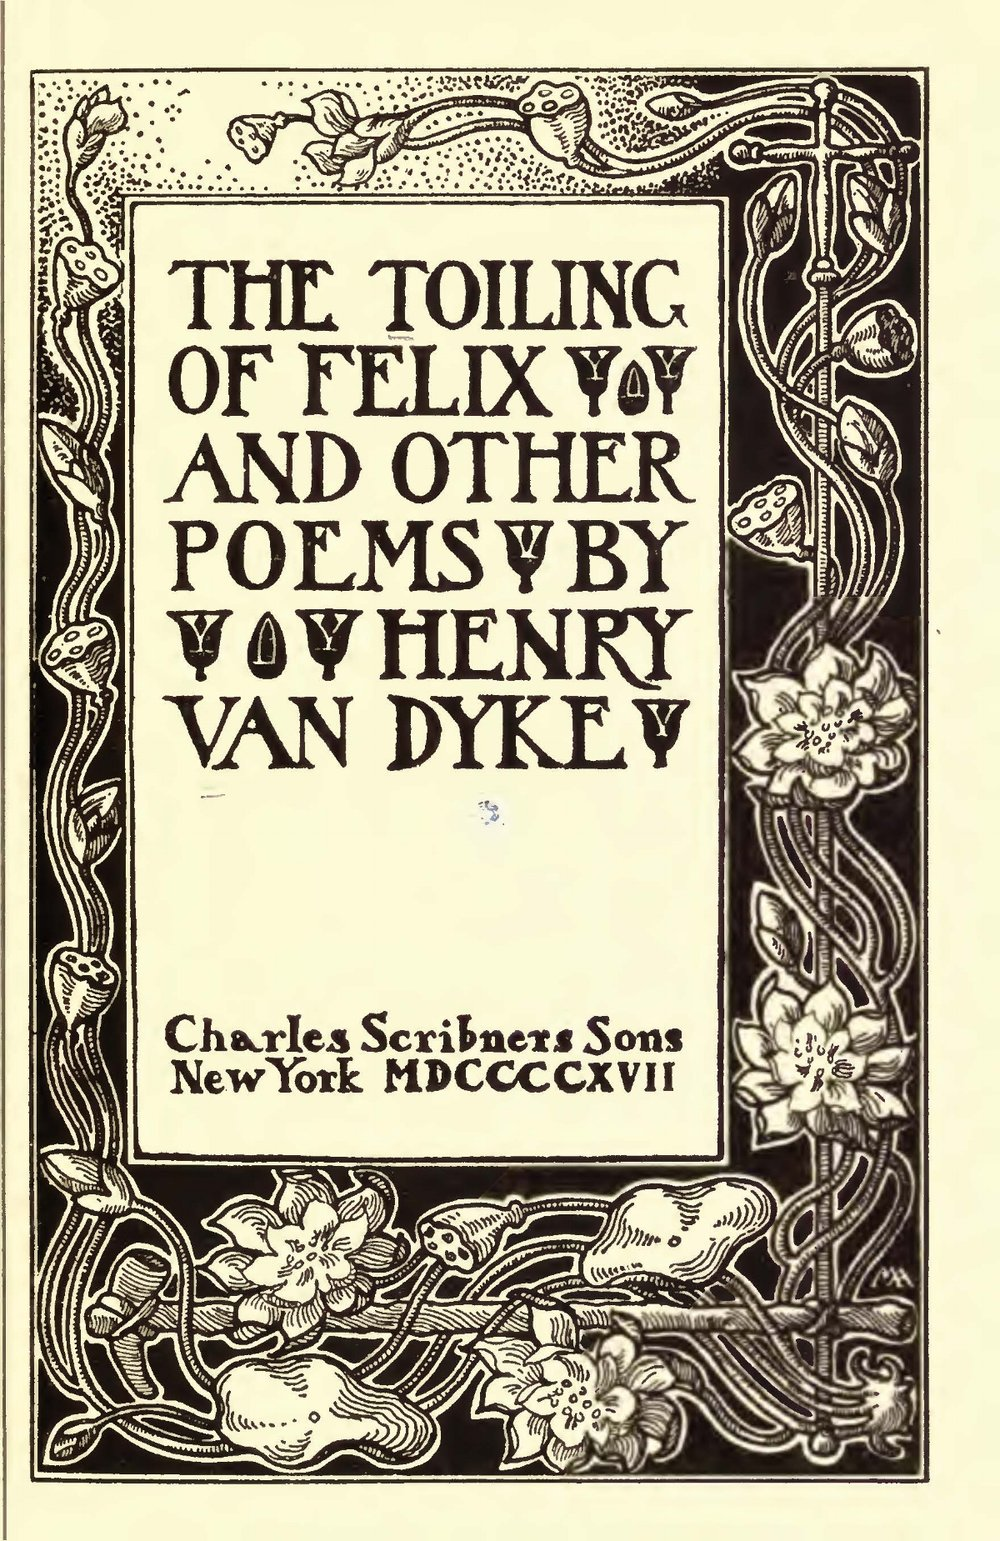 Van Dyke, Jr., Henry Jackson, The Toiling of Felix Title Page.jpg